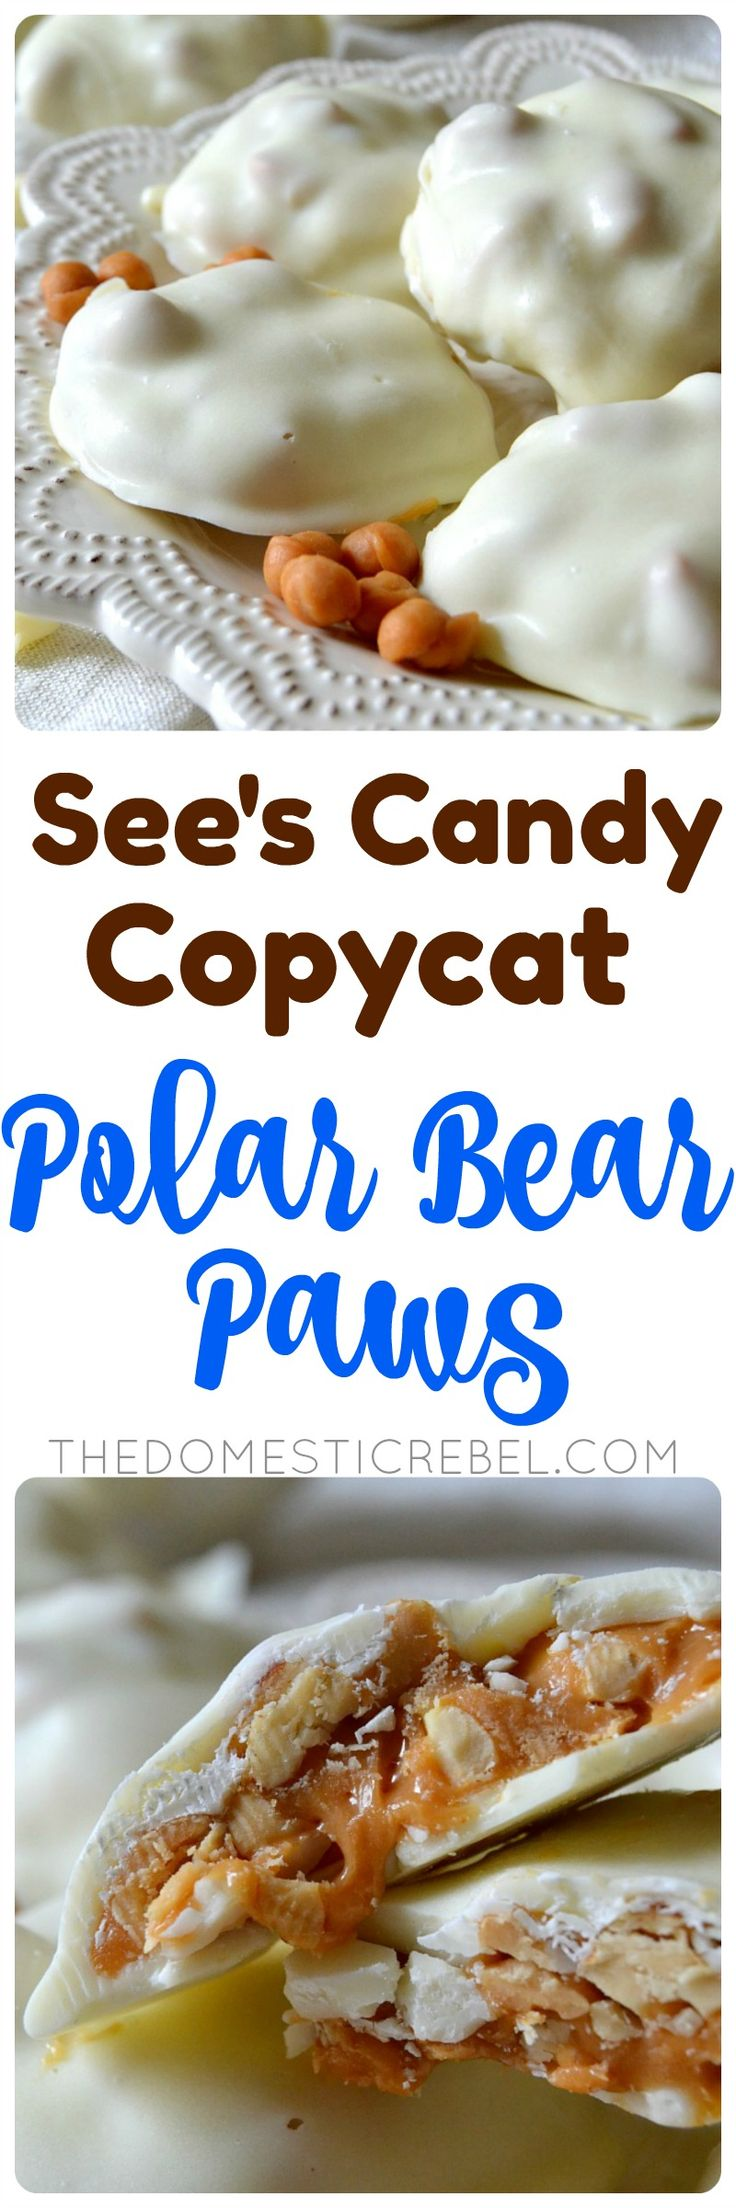 These POLAR BEAR PAWS taste even BETTER than the ones at See's Candy! Buttery caramel and crunchy, slightly salty peanuts are enrobed in sweet white chocolate for an addictive candy made start to finish in about 30 minutes! So easy and great for gift-giving! ~ The Domestic Rebel